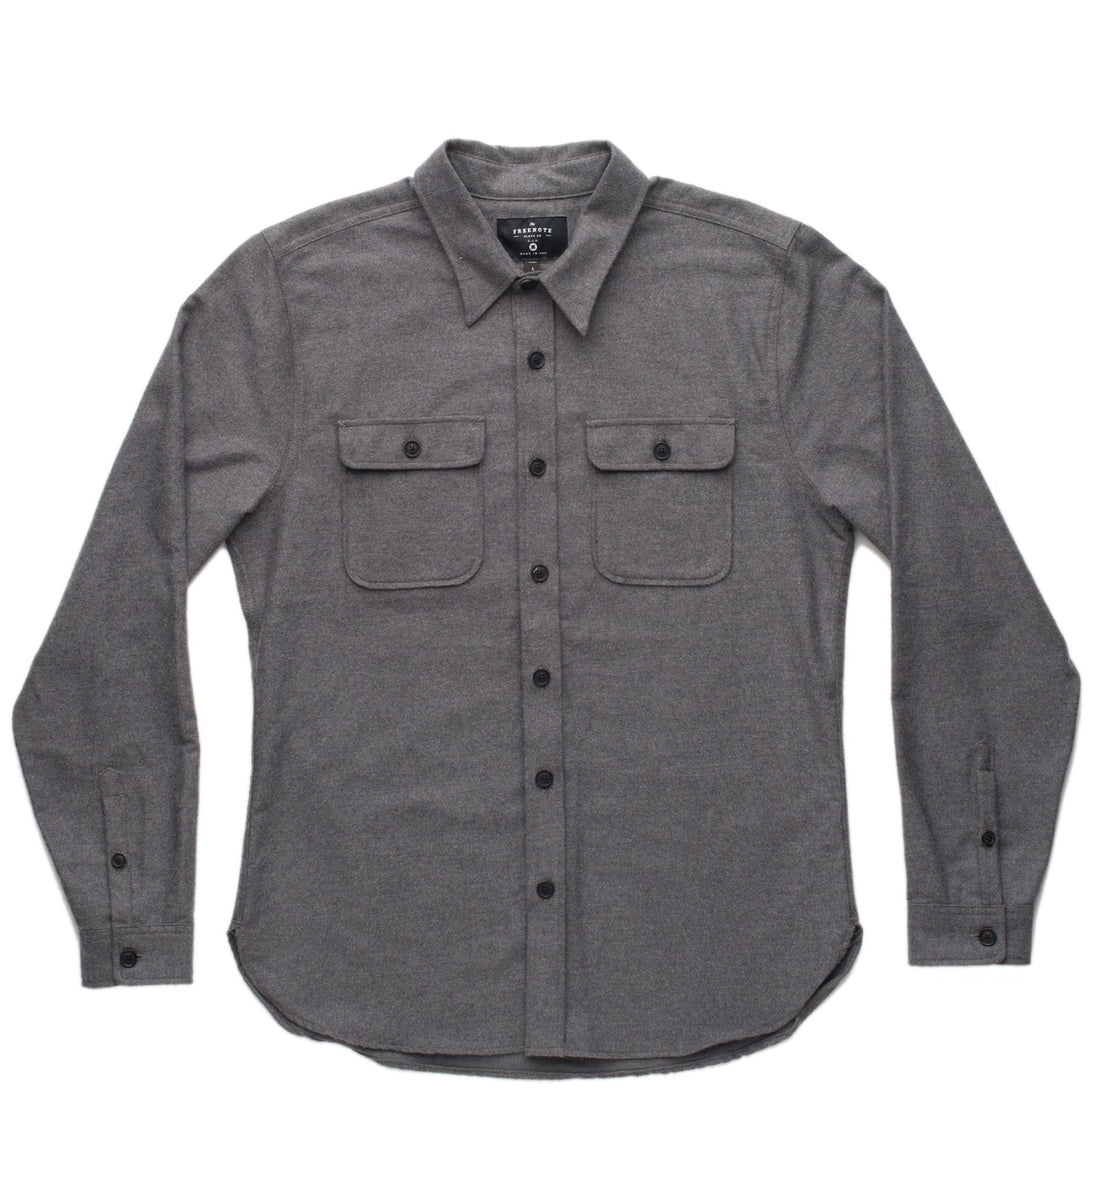 Freenote Gilroy Button Up - Tops - Iron and Resin